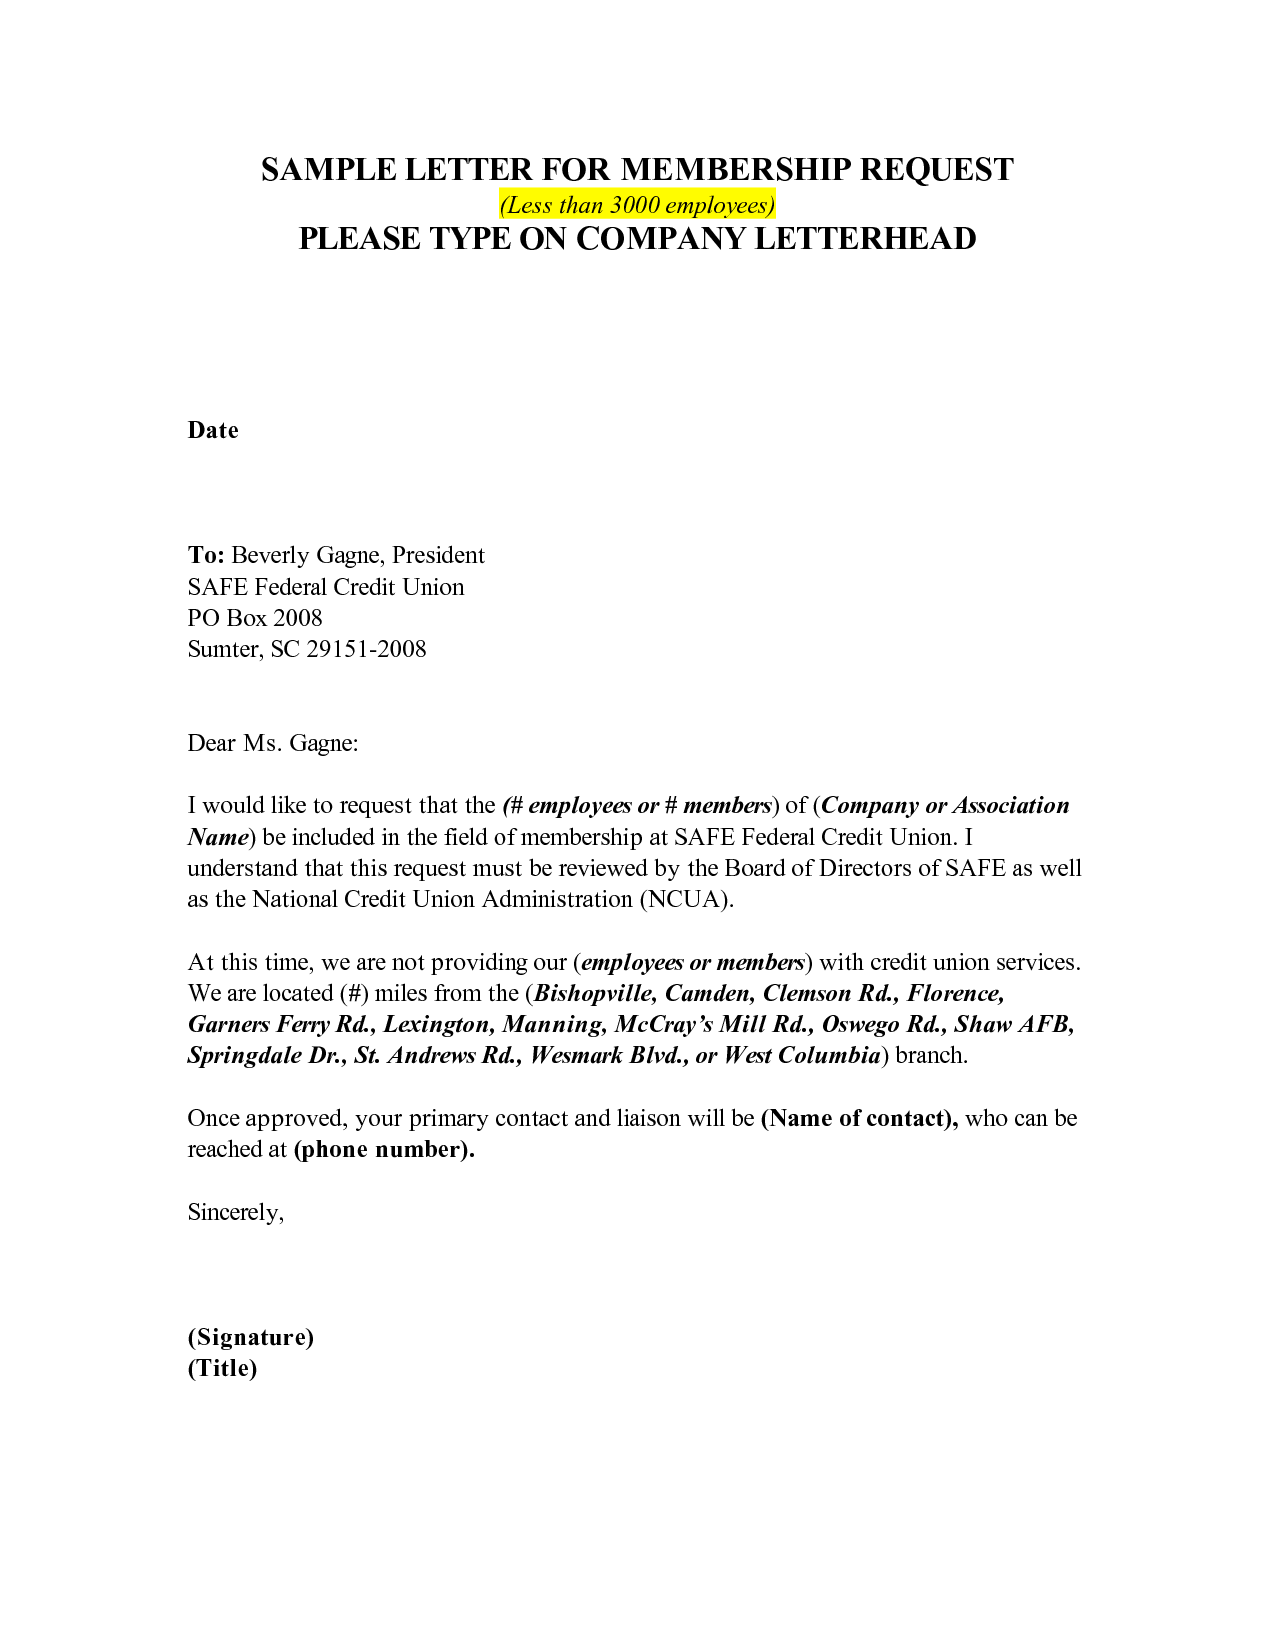 Cancel gym membership letter robertottni cancel gym membership letter thecheapjerseys Image collections